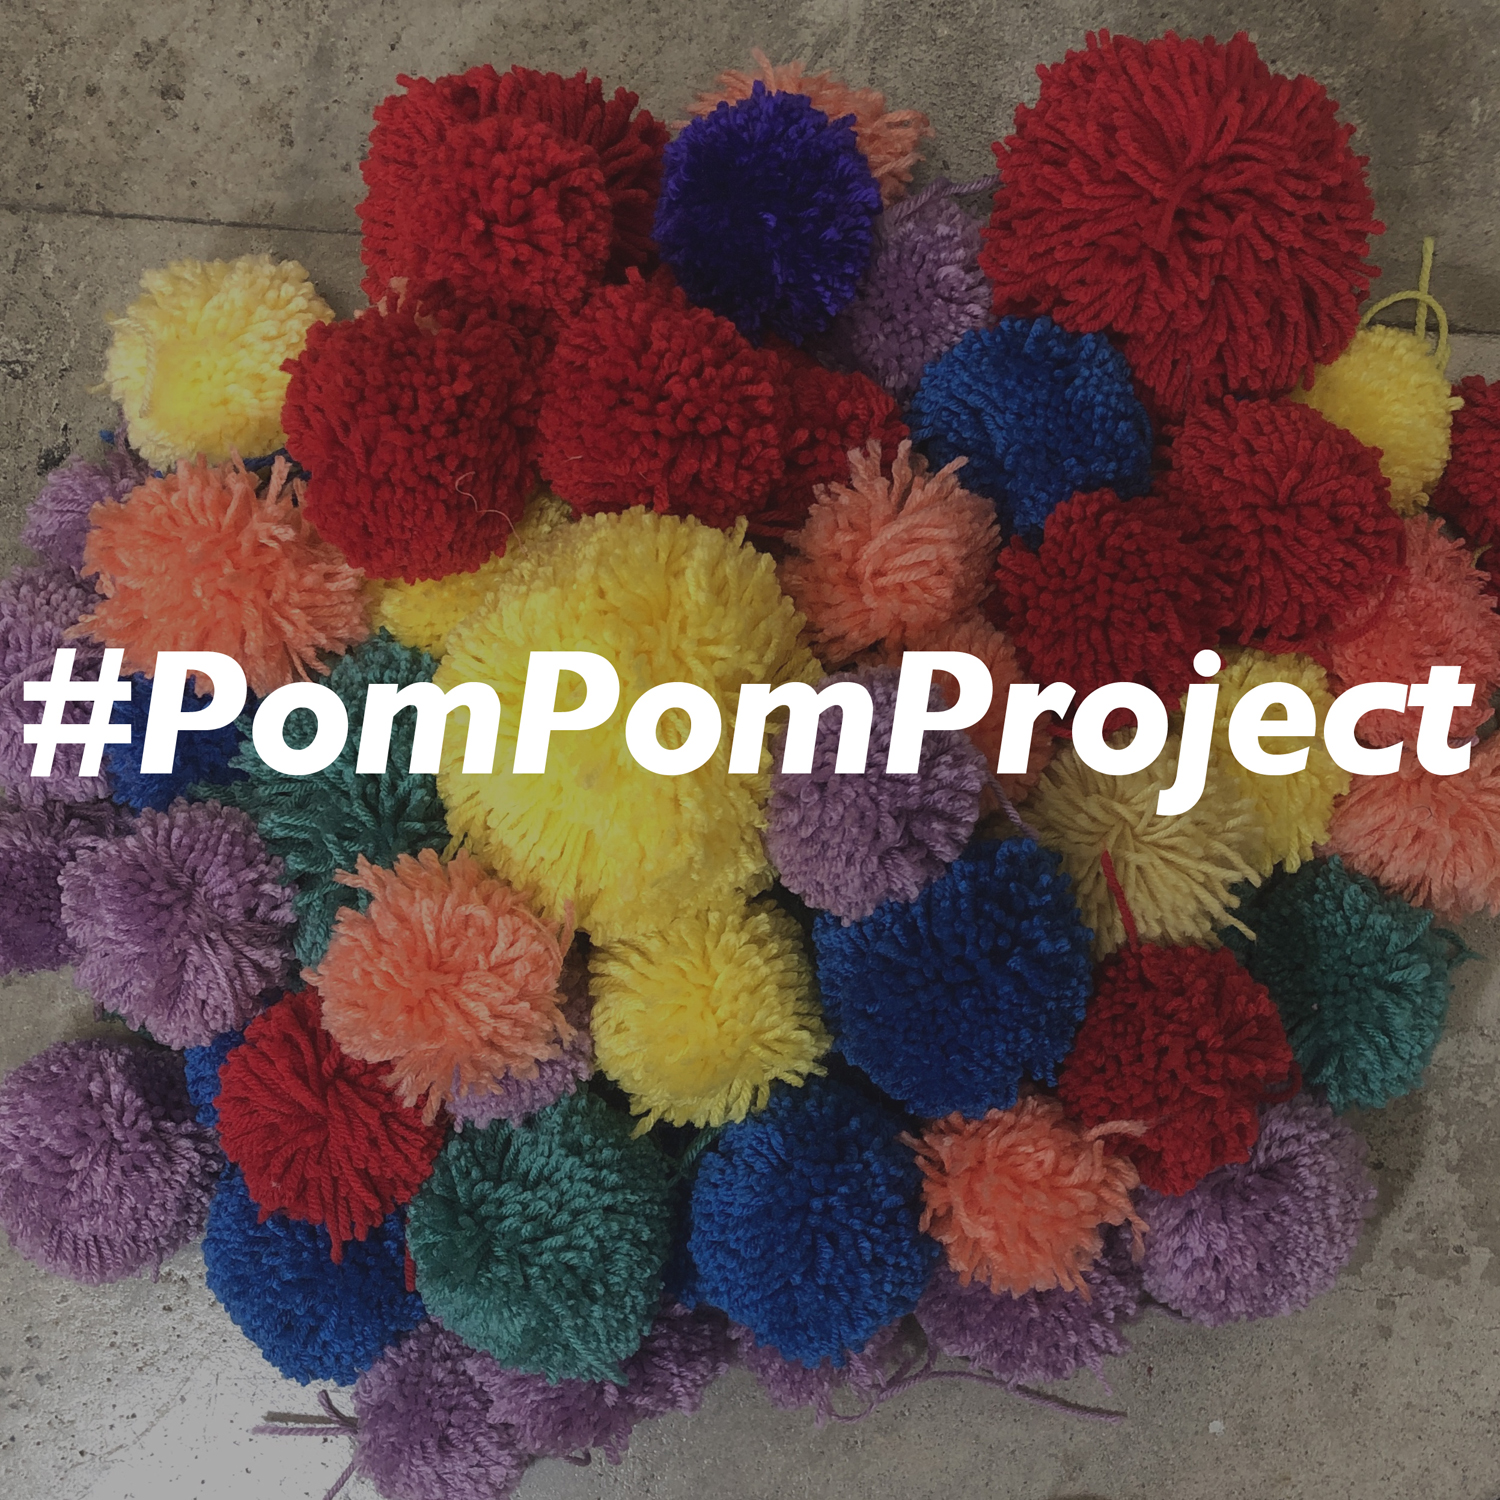 #PomPomProject